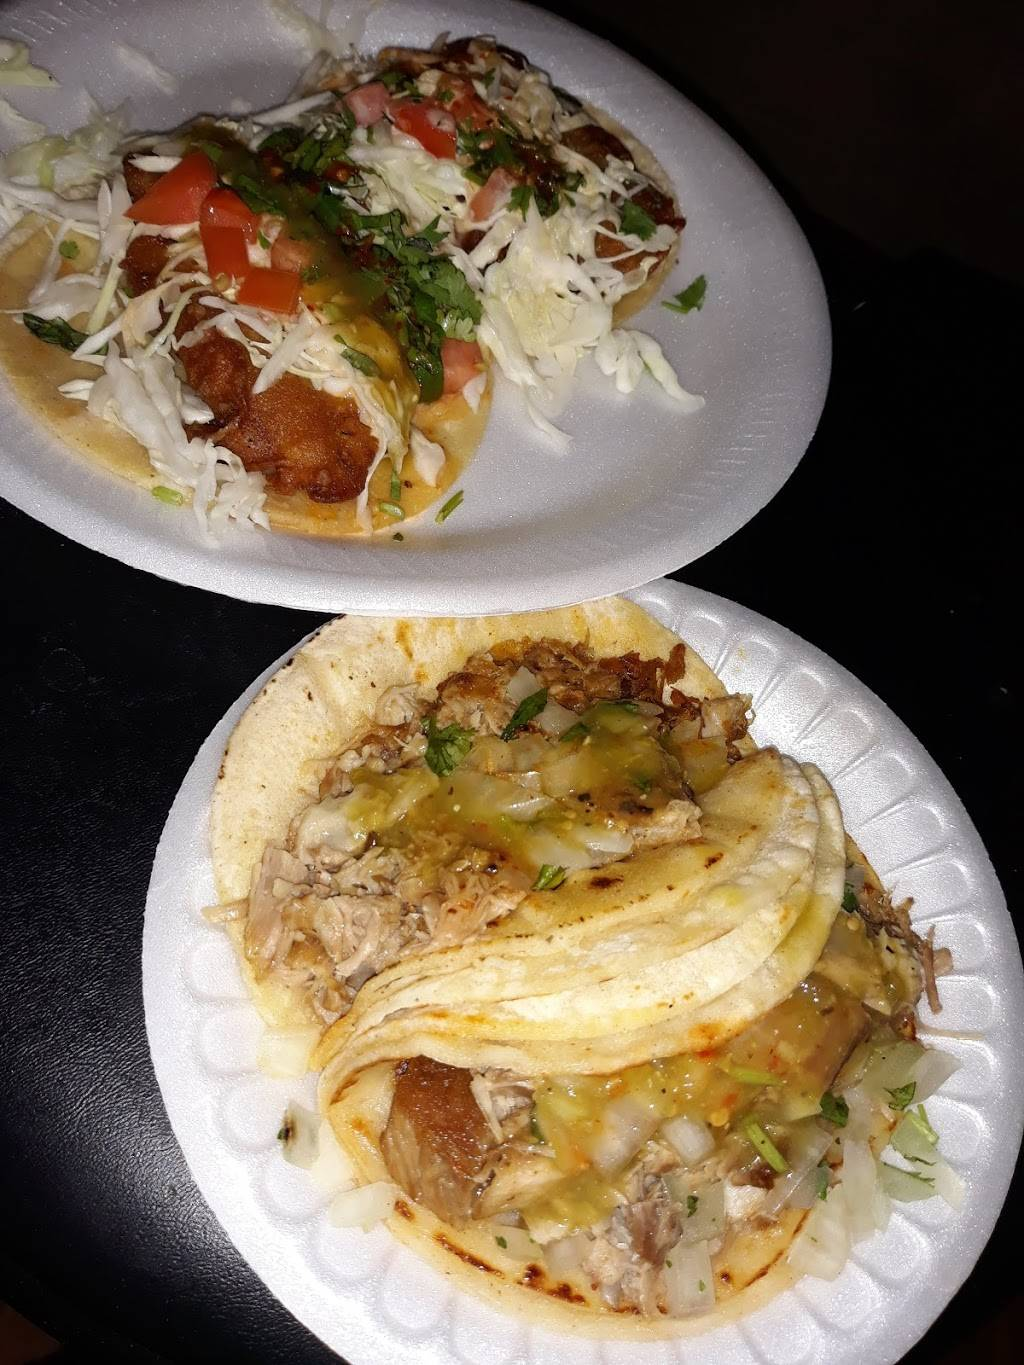 Joses Tacos Truck - restaurant    Photo 4 of 6   Address: 14226 Leffingwell Rd, Whittier, CA 90604, USA   Phone: (626) 209-3414